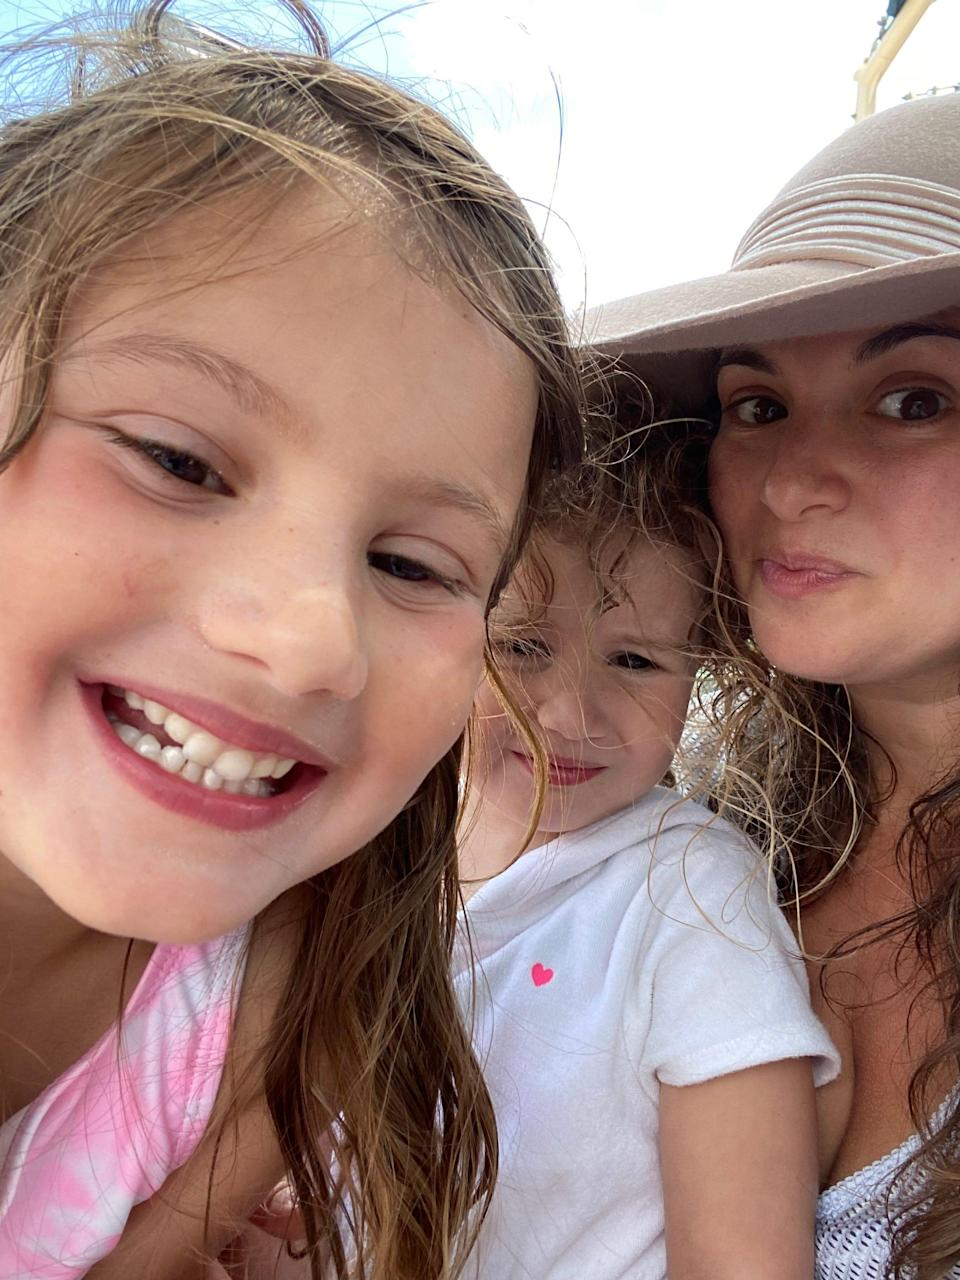 hilary young in a hat on the beach with her two daughters, 6 and 3.